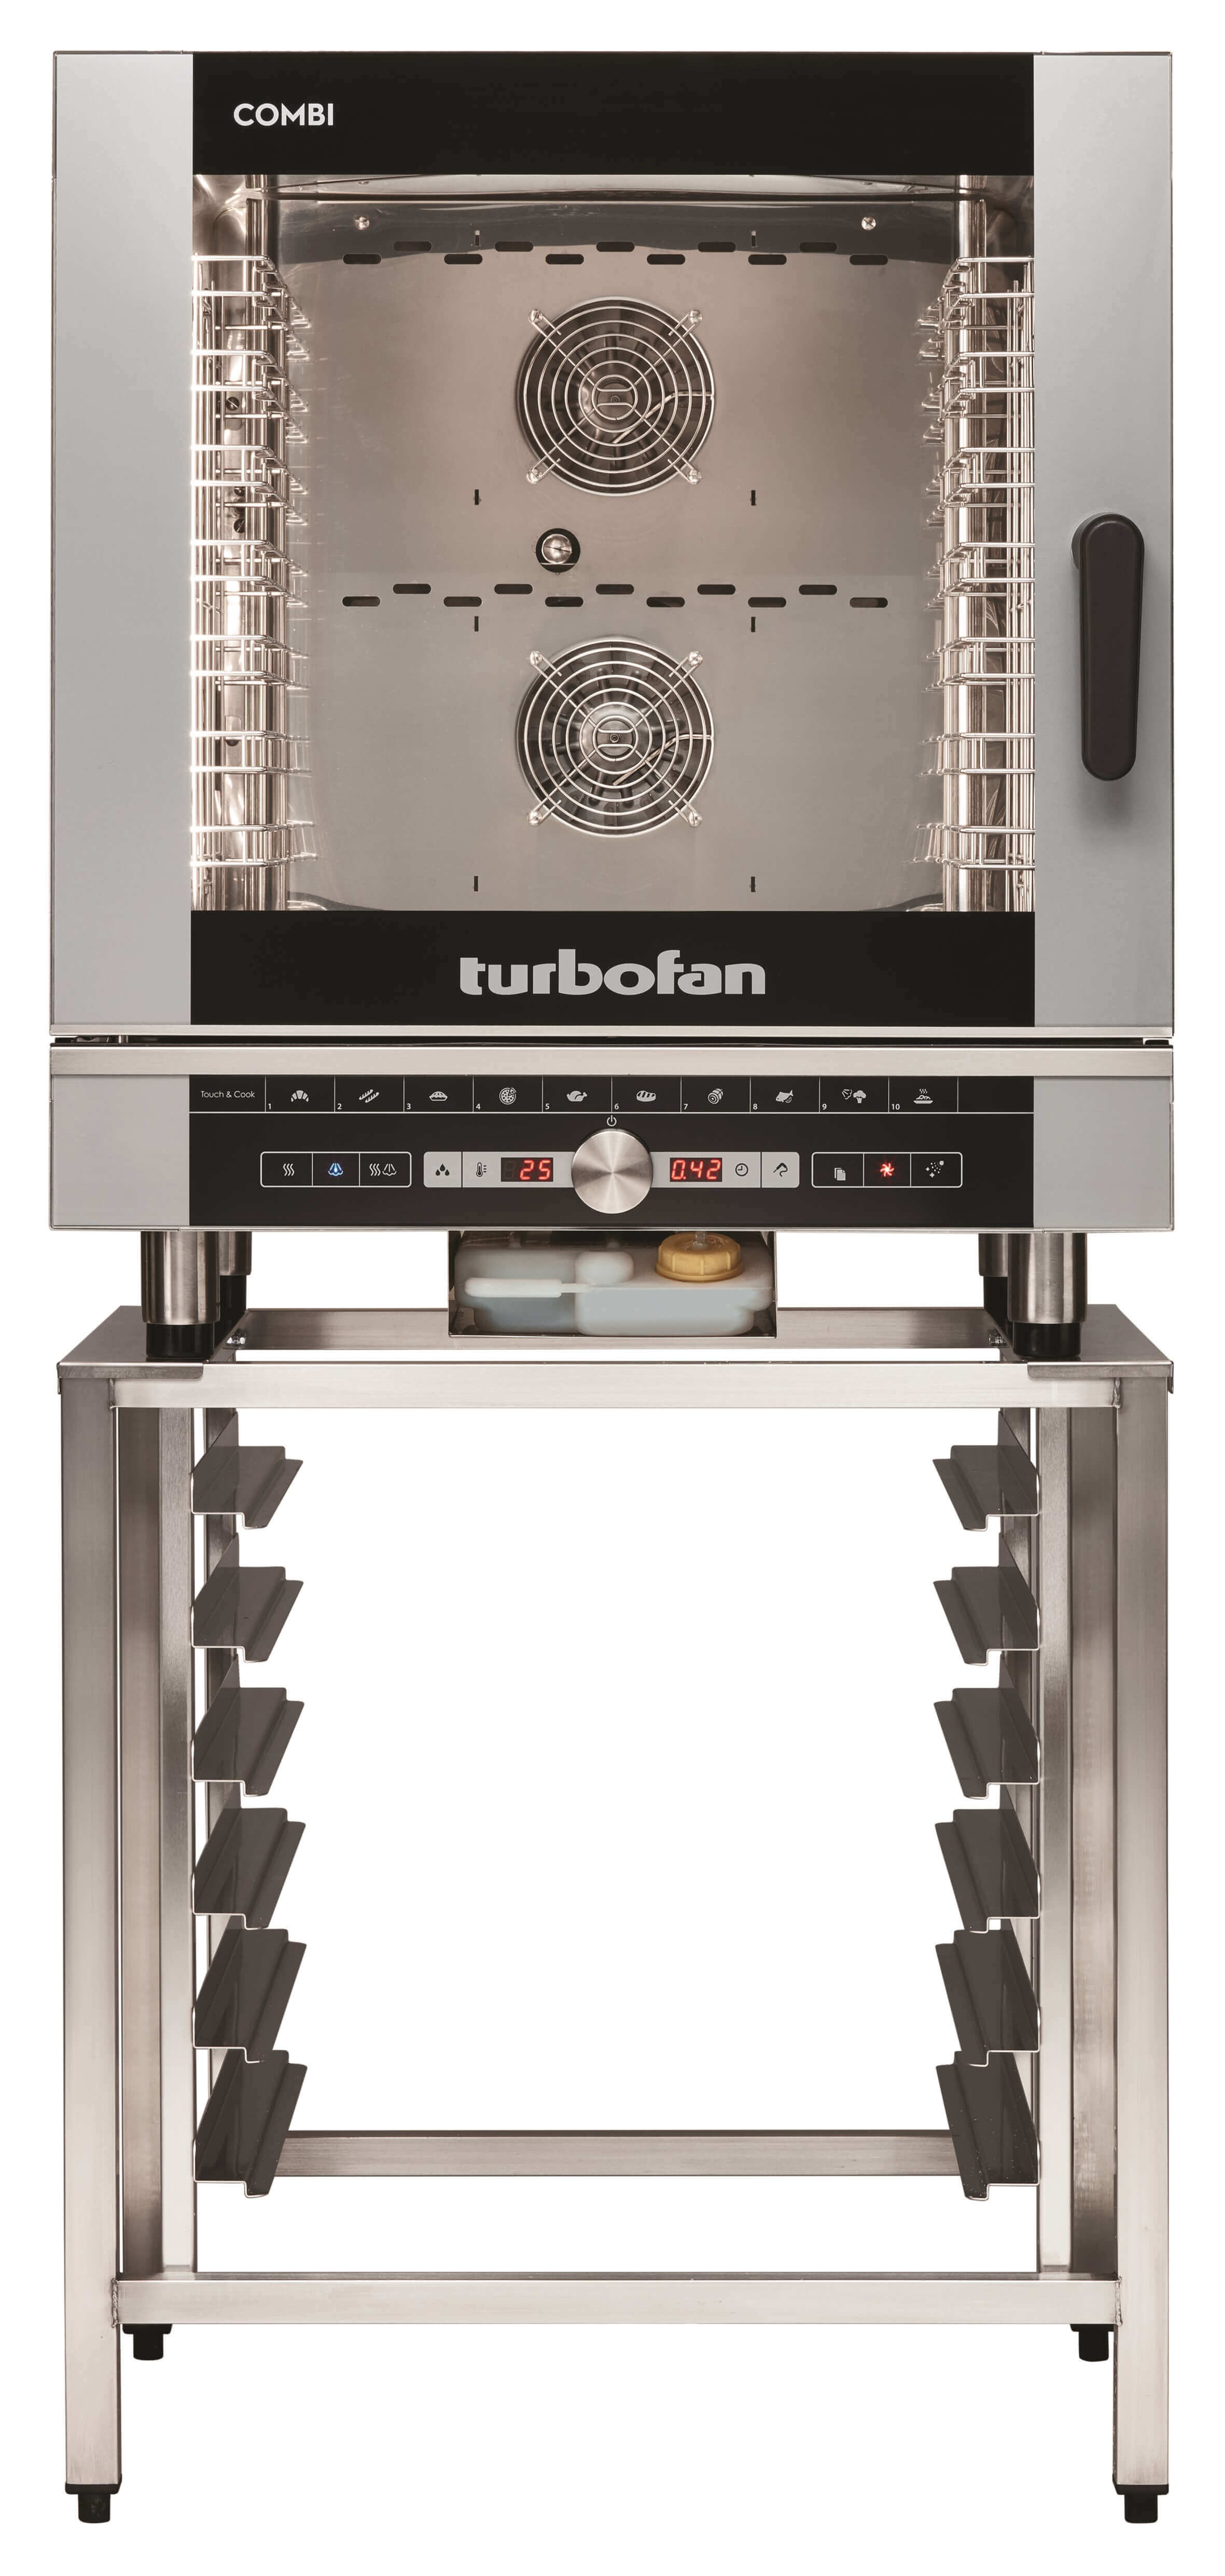 Blue Seal Turbofan EC40D7 Combi Steamer